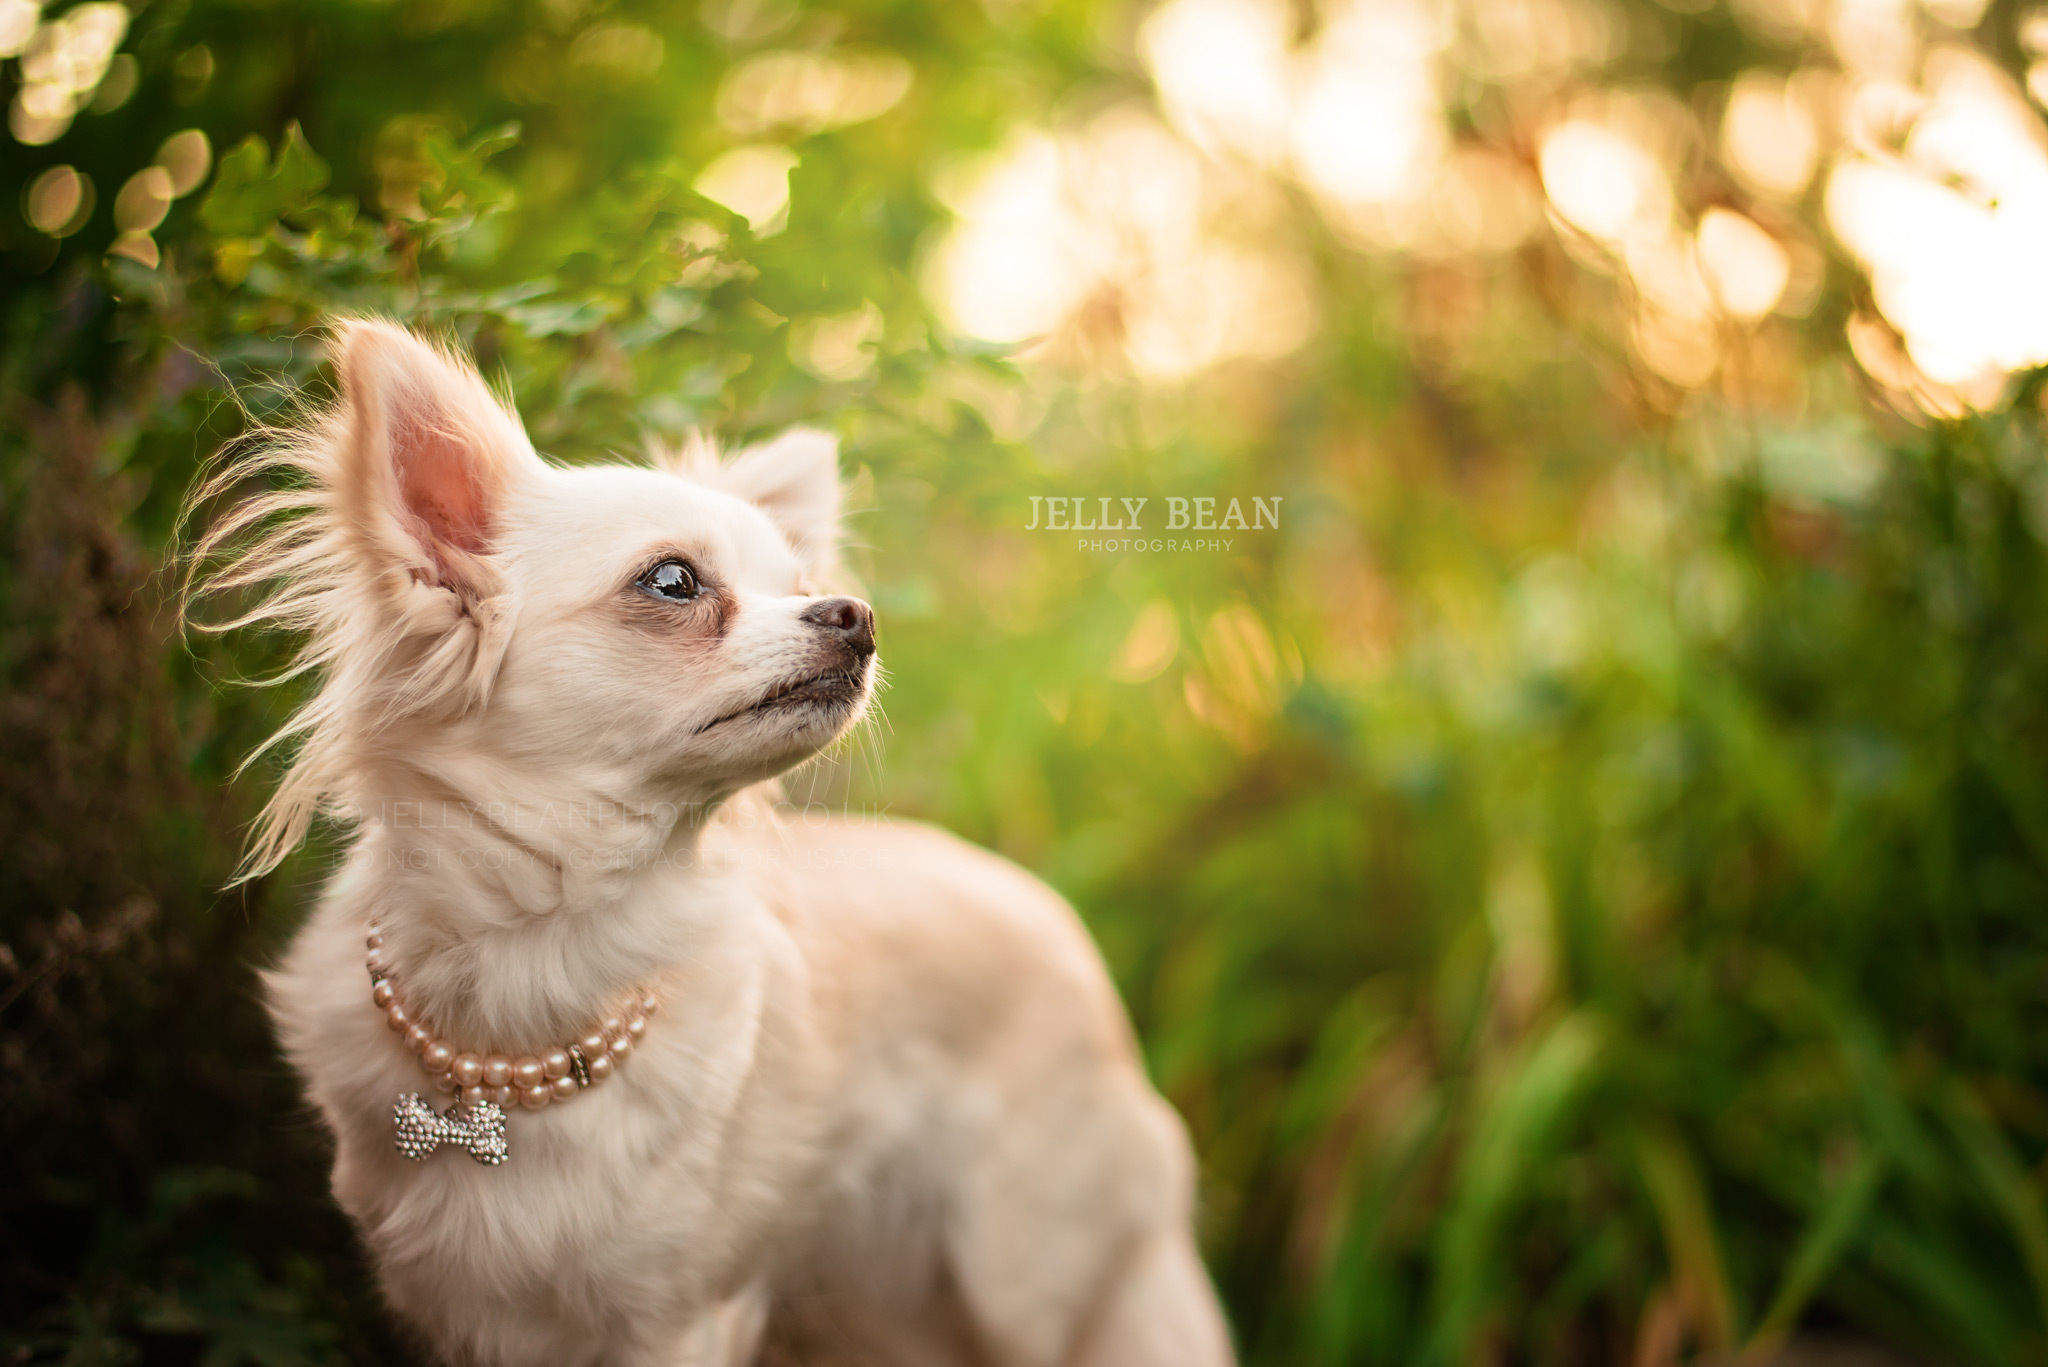 Chihuahua wearing pearl necklace